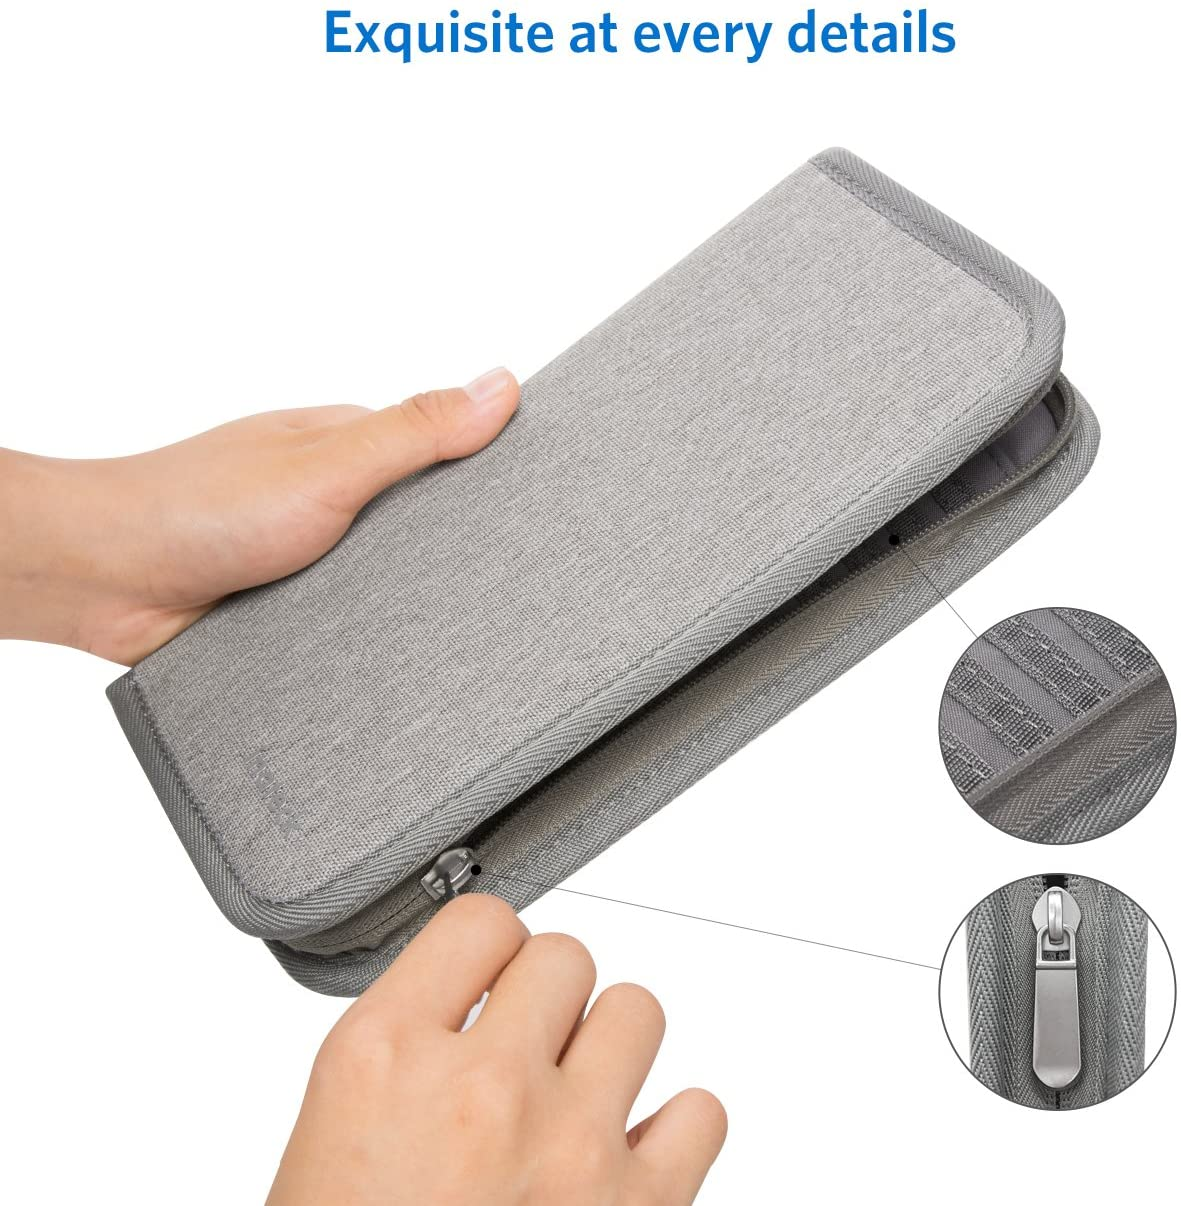 Inateck Travel Wallet Passport Holder Family Document Card with Hand Strap Zip Closure Document Organizer MP0603, Gray